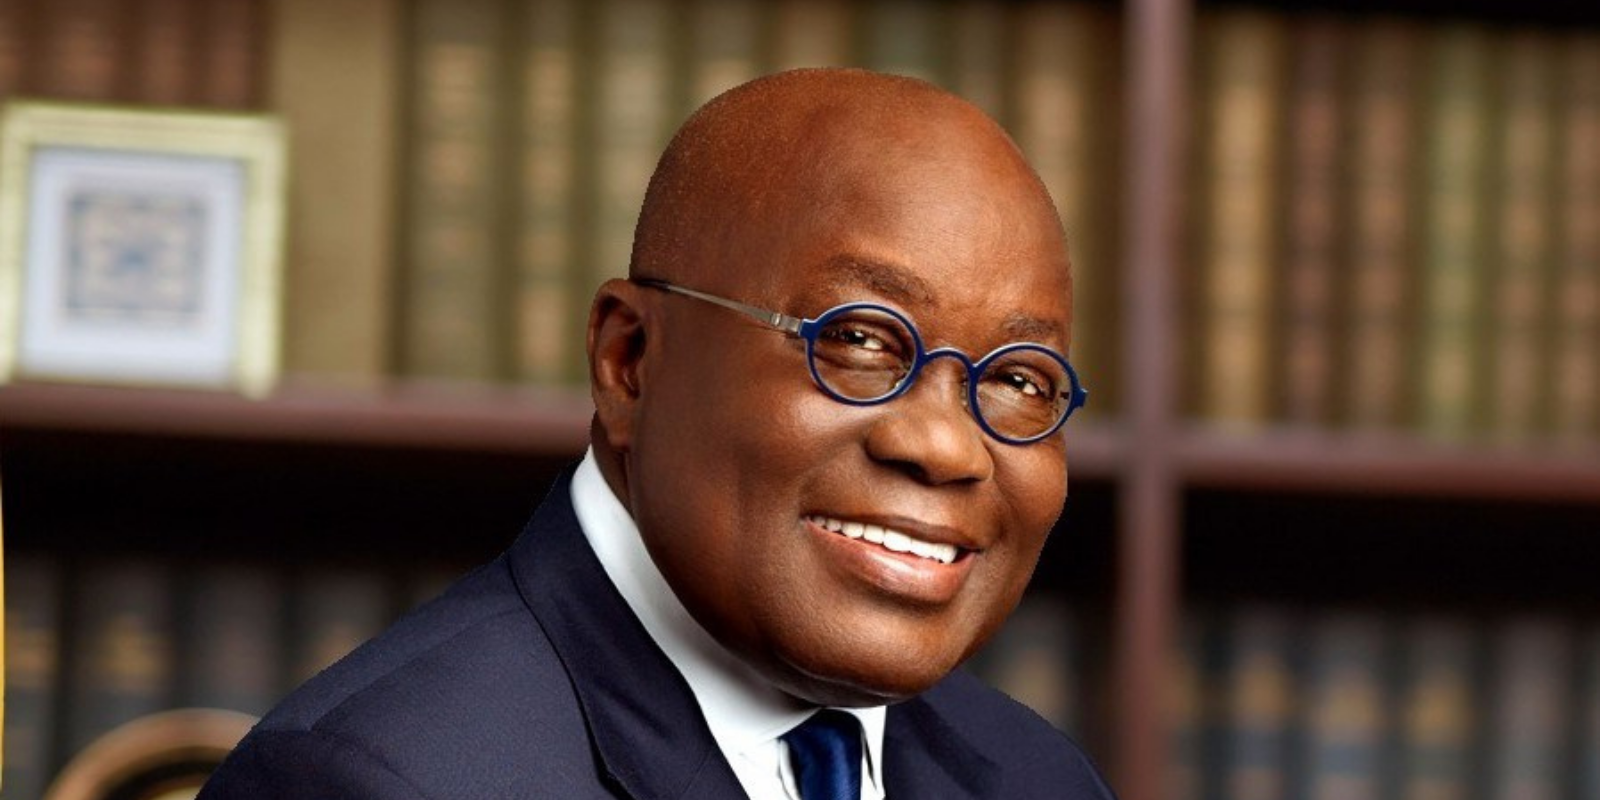 Nana Akufo-Addo is the president of which country?